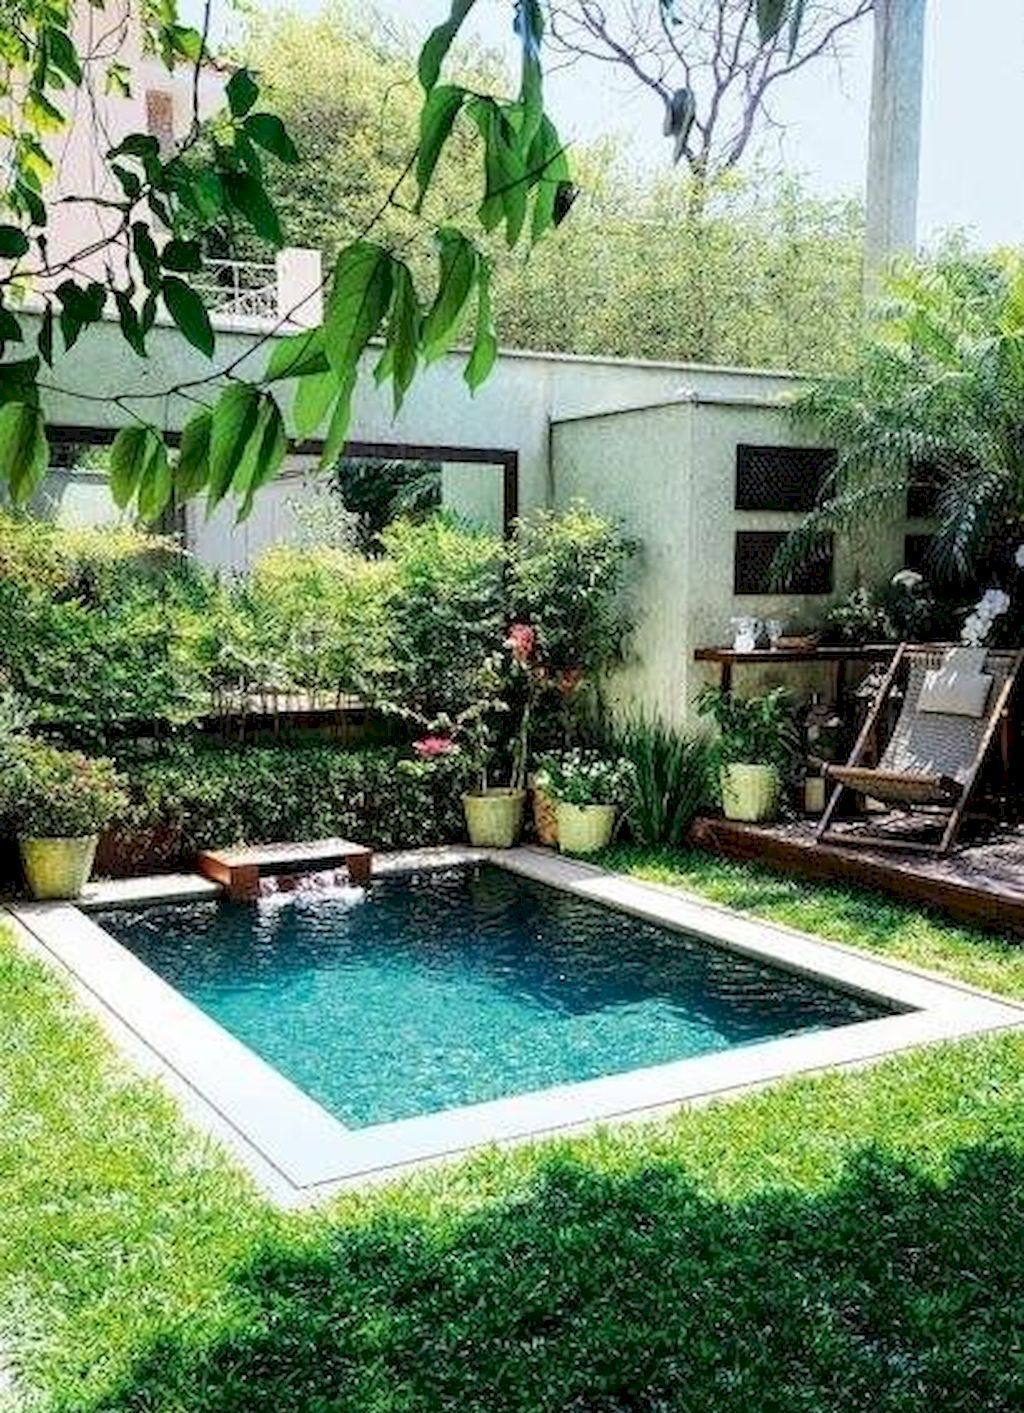 Gorgeous 90 Small Backyard Swimming Pool Ideas And Design Https Architeworks Com 90 Small Bac Swimming Pools Backyard Small Pool Design Backyard Pool Designs